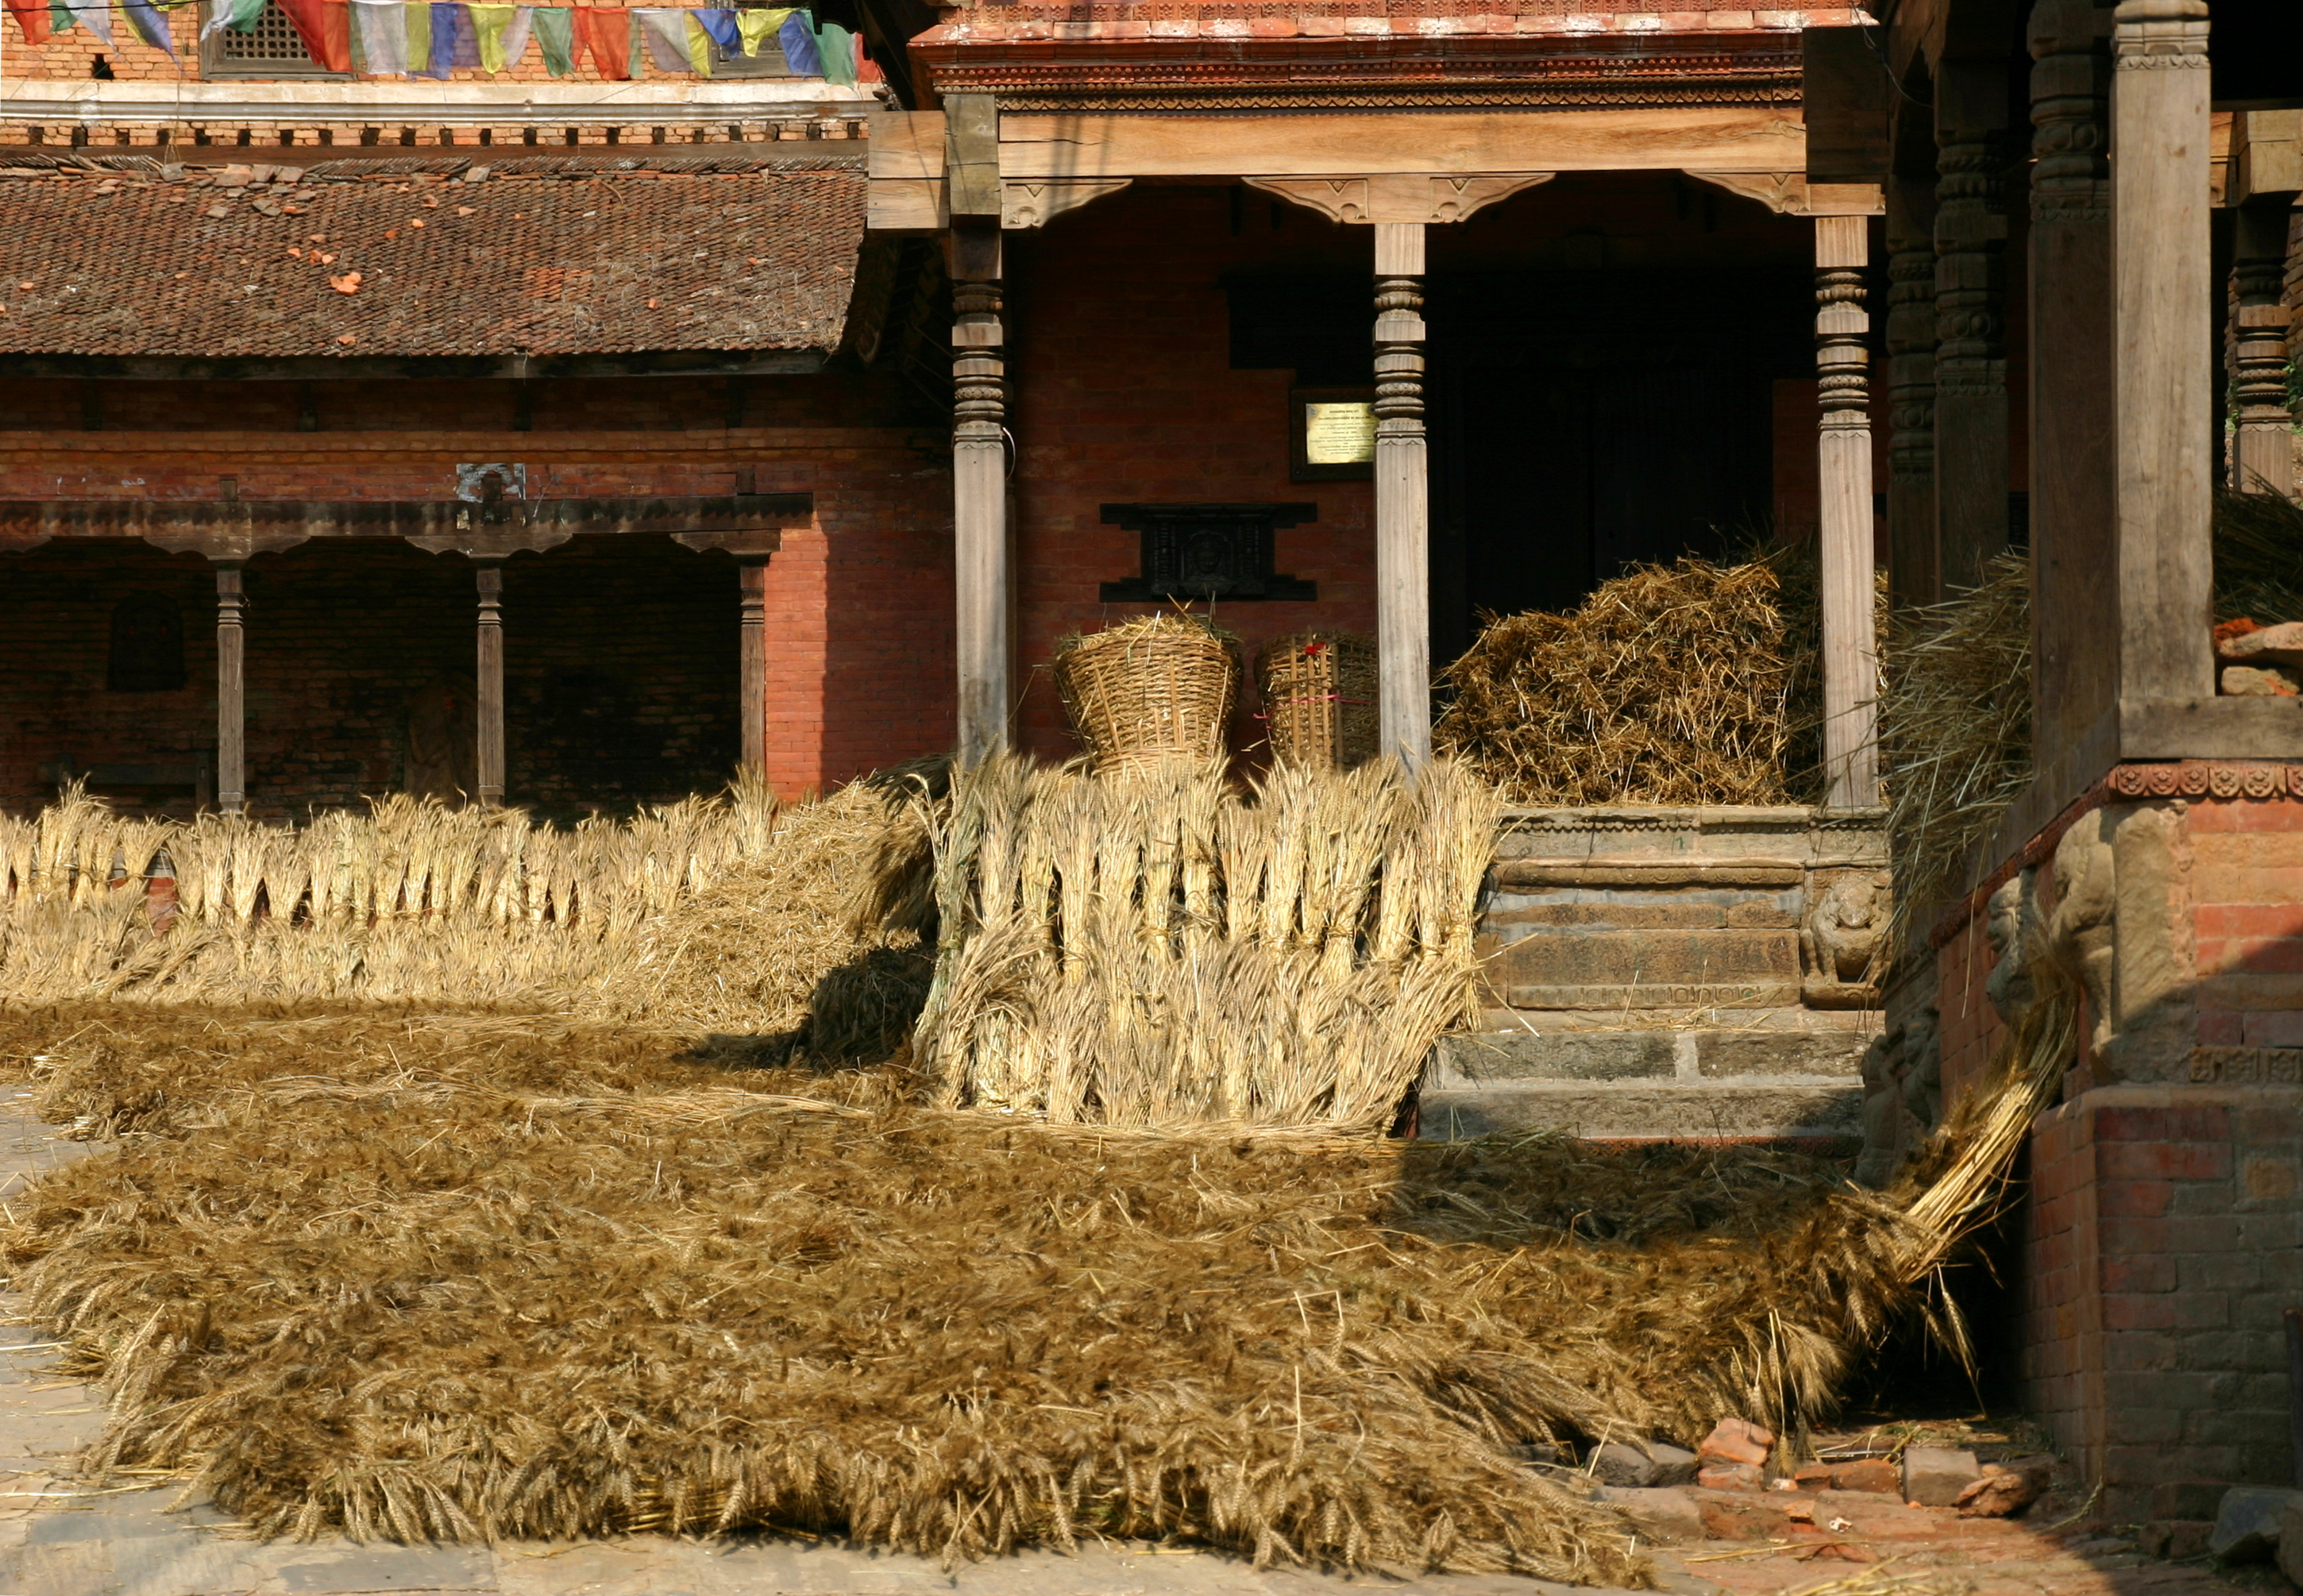 Changu Narayan temple (the oldest in Nepal) used as drying place for straw